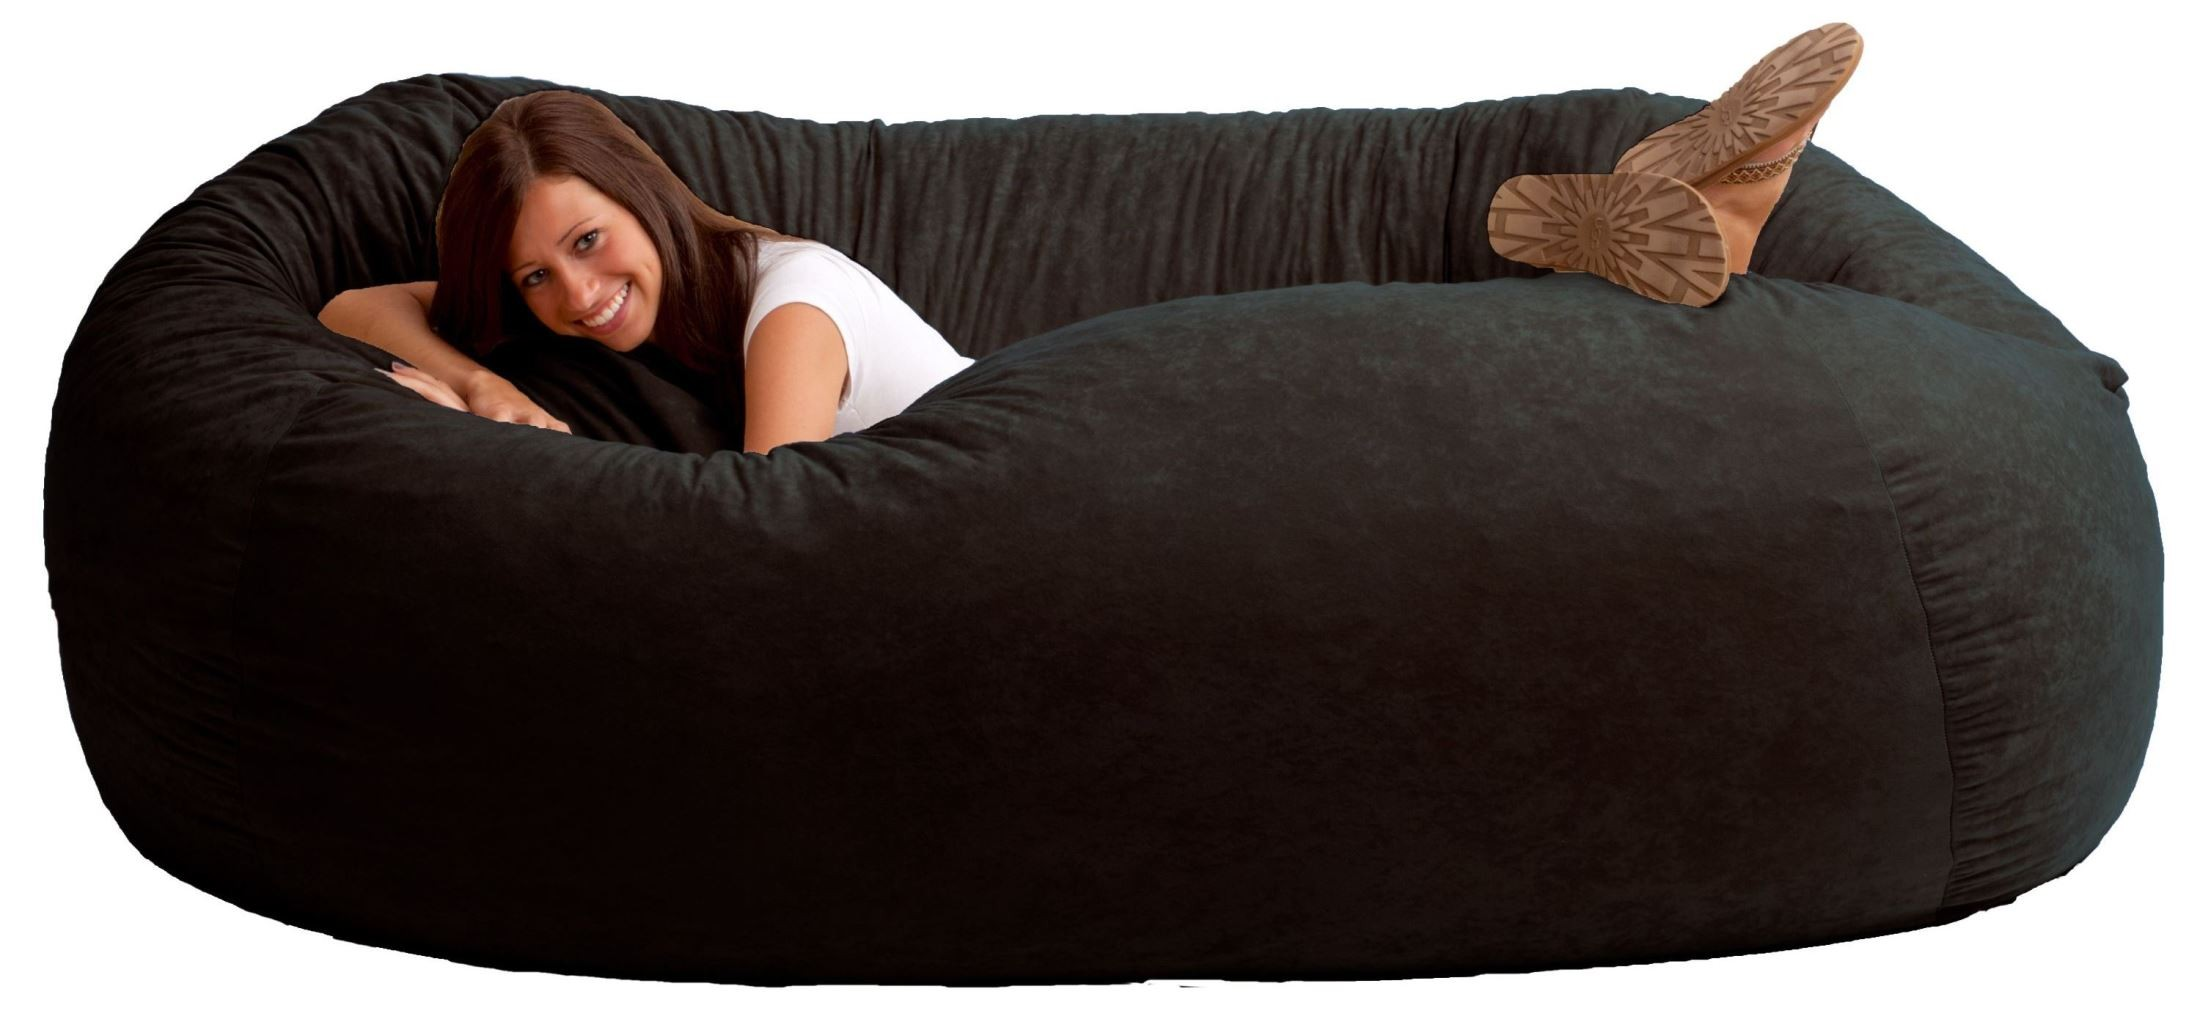 Big Joe Xxl Fuf Black Onyx Suede Comfort Bean Bag From